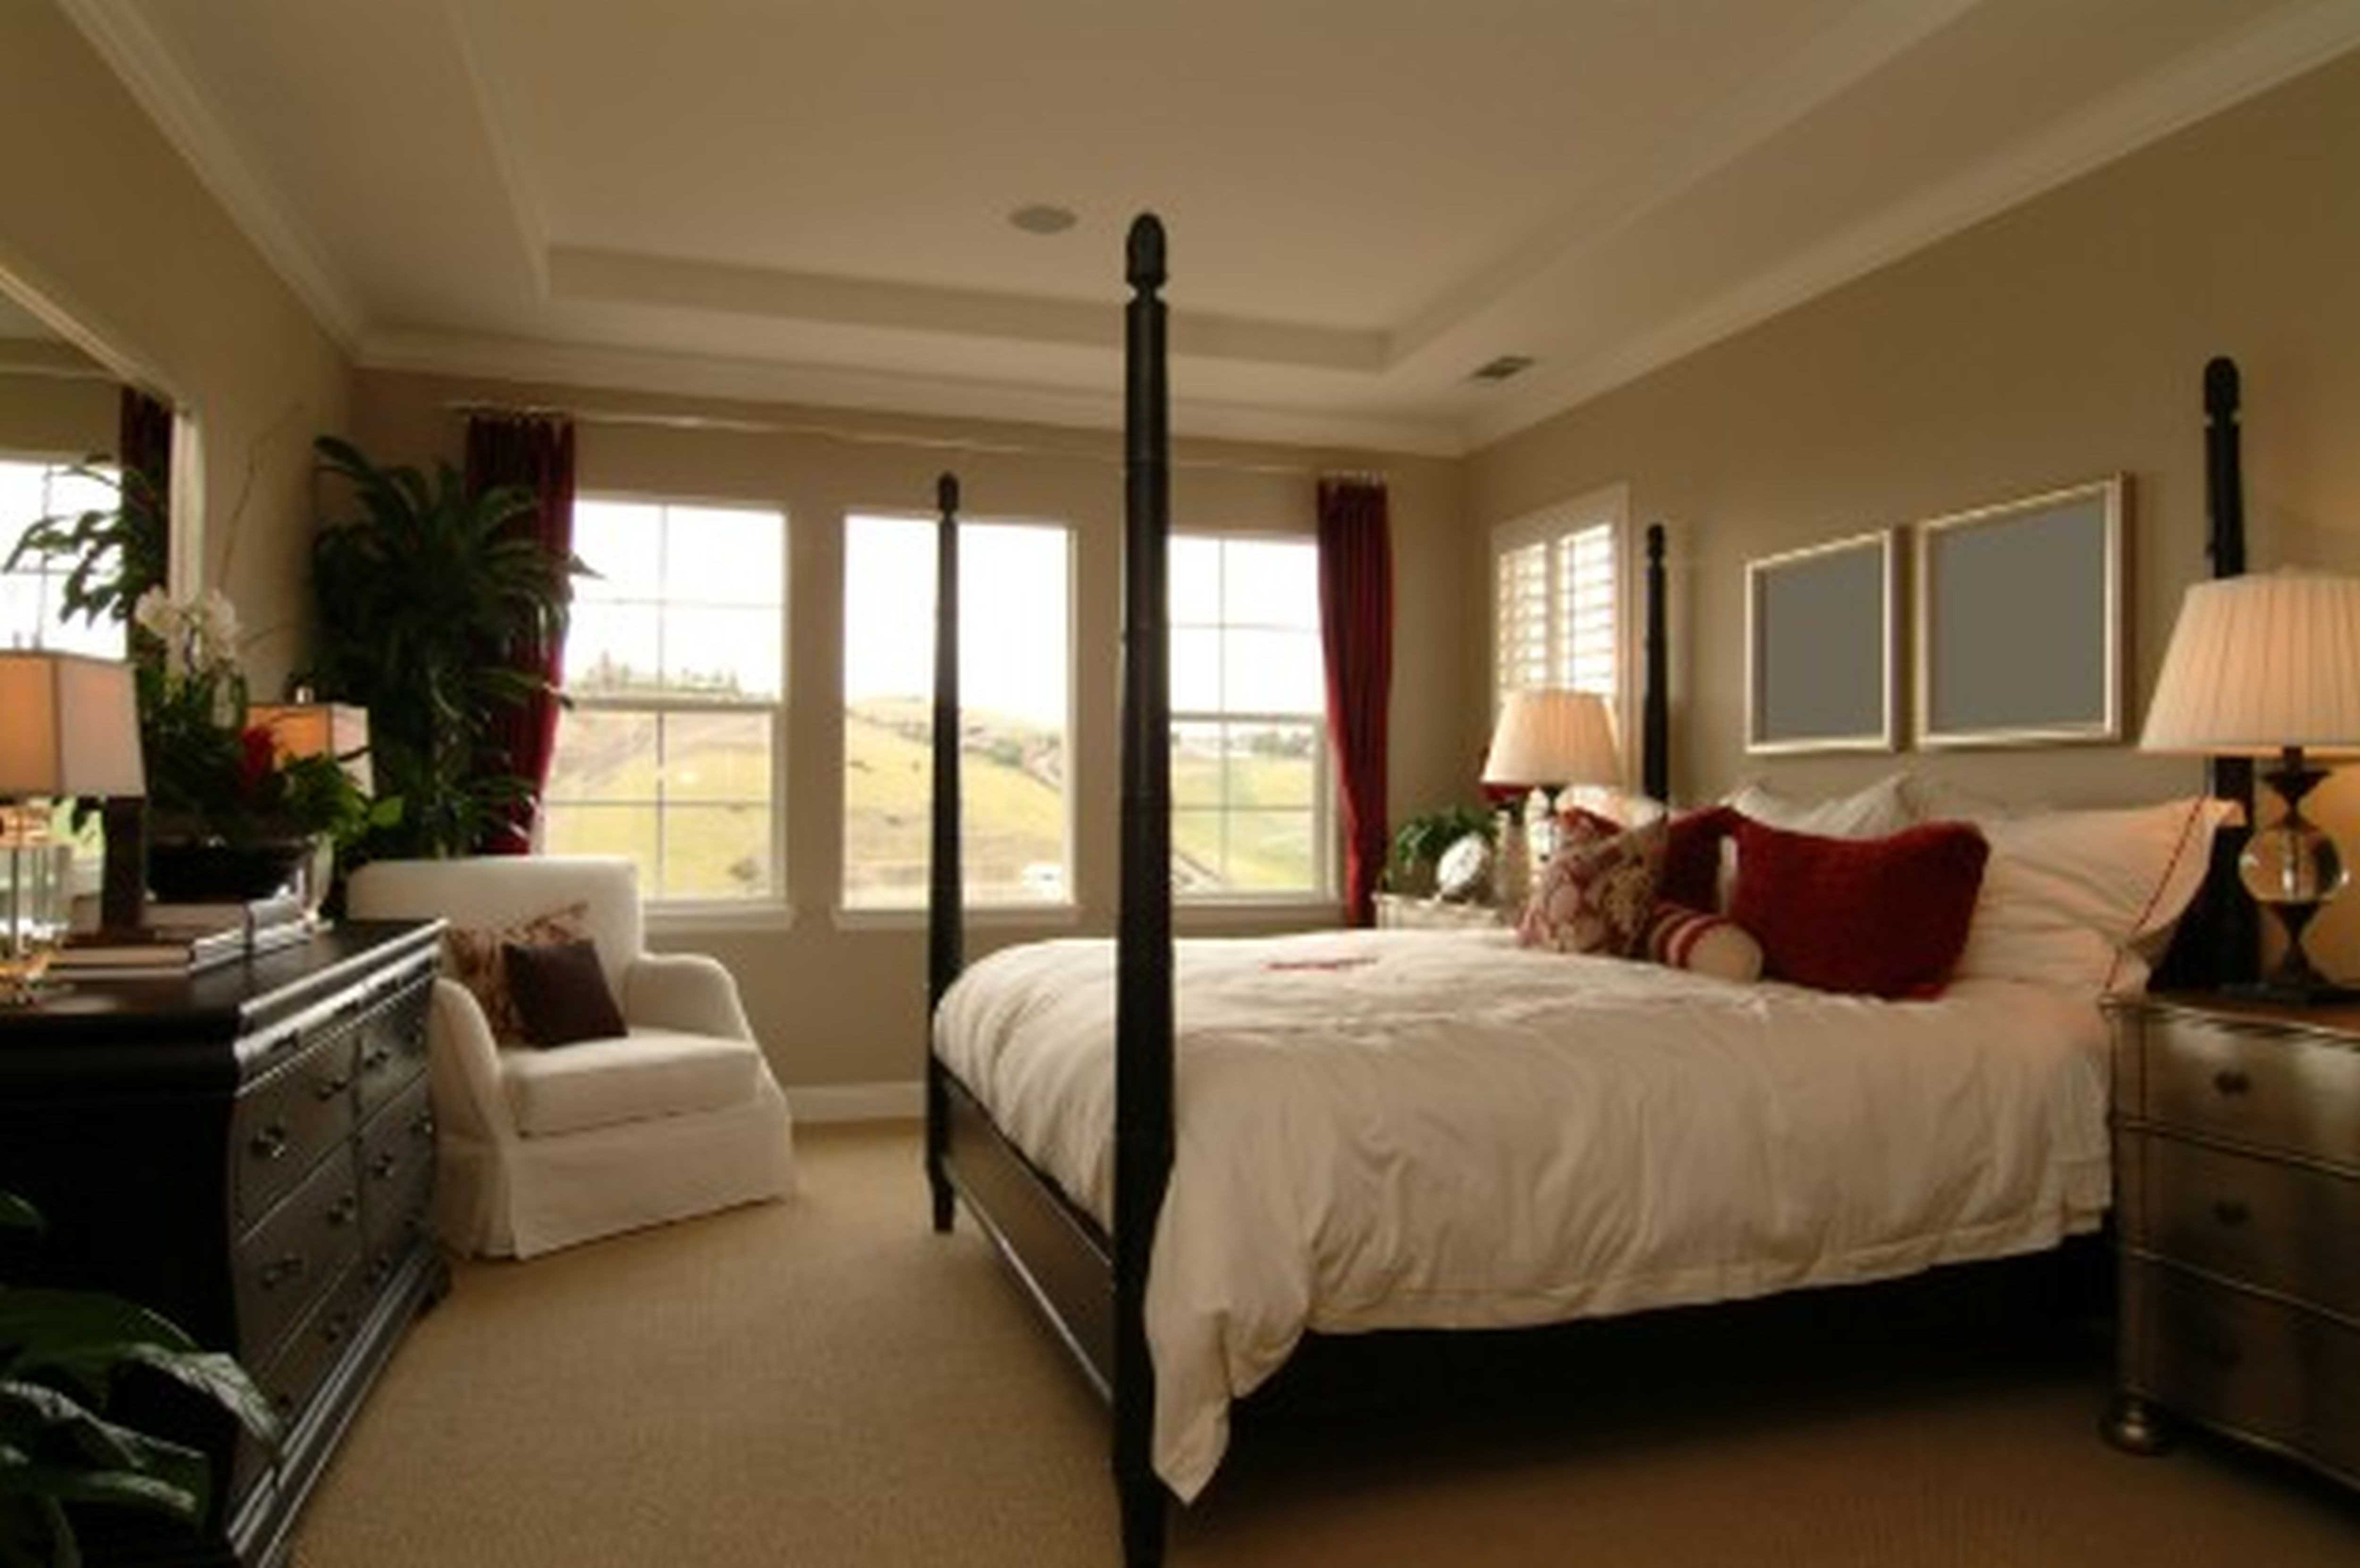 Best ideas about Master Bedroom Decor . Save or Pin Interior Design Bedroom Ideas A Bud Now.